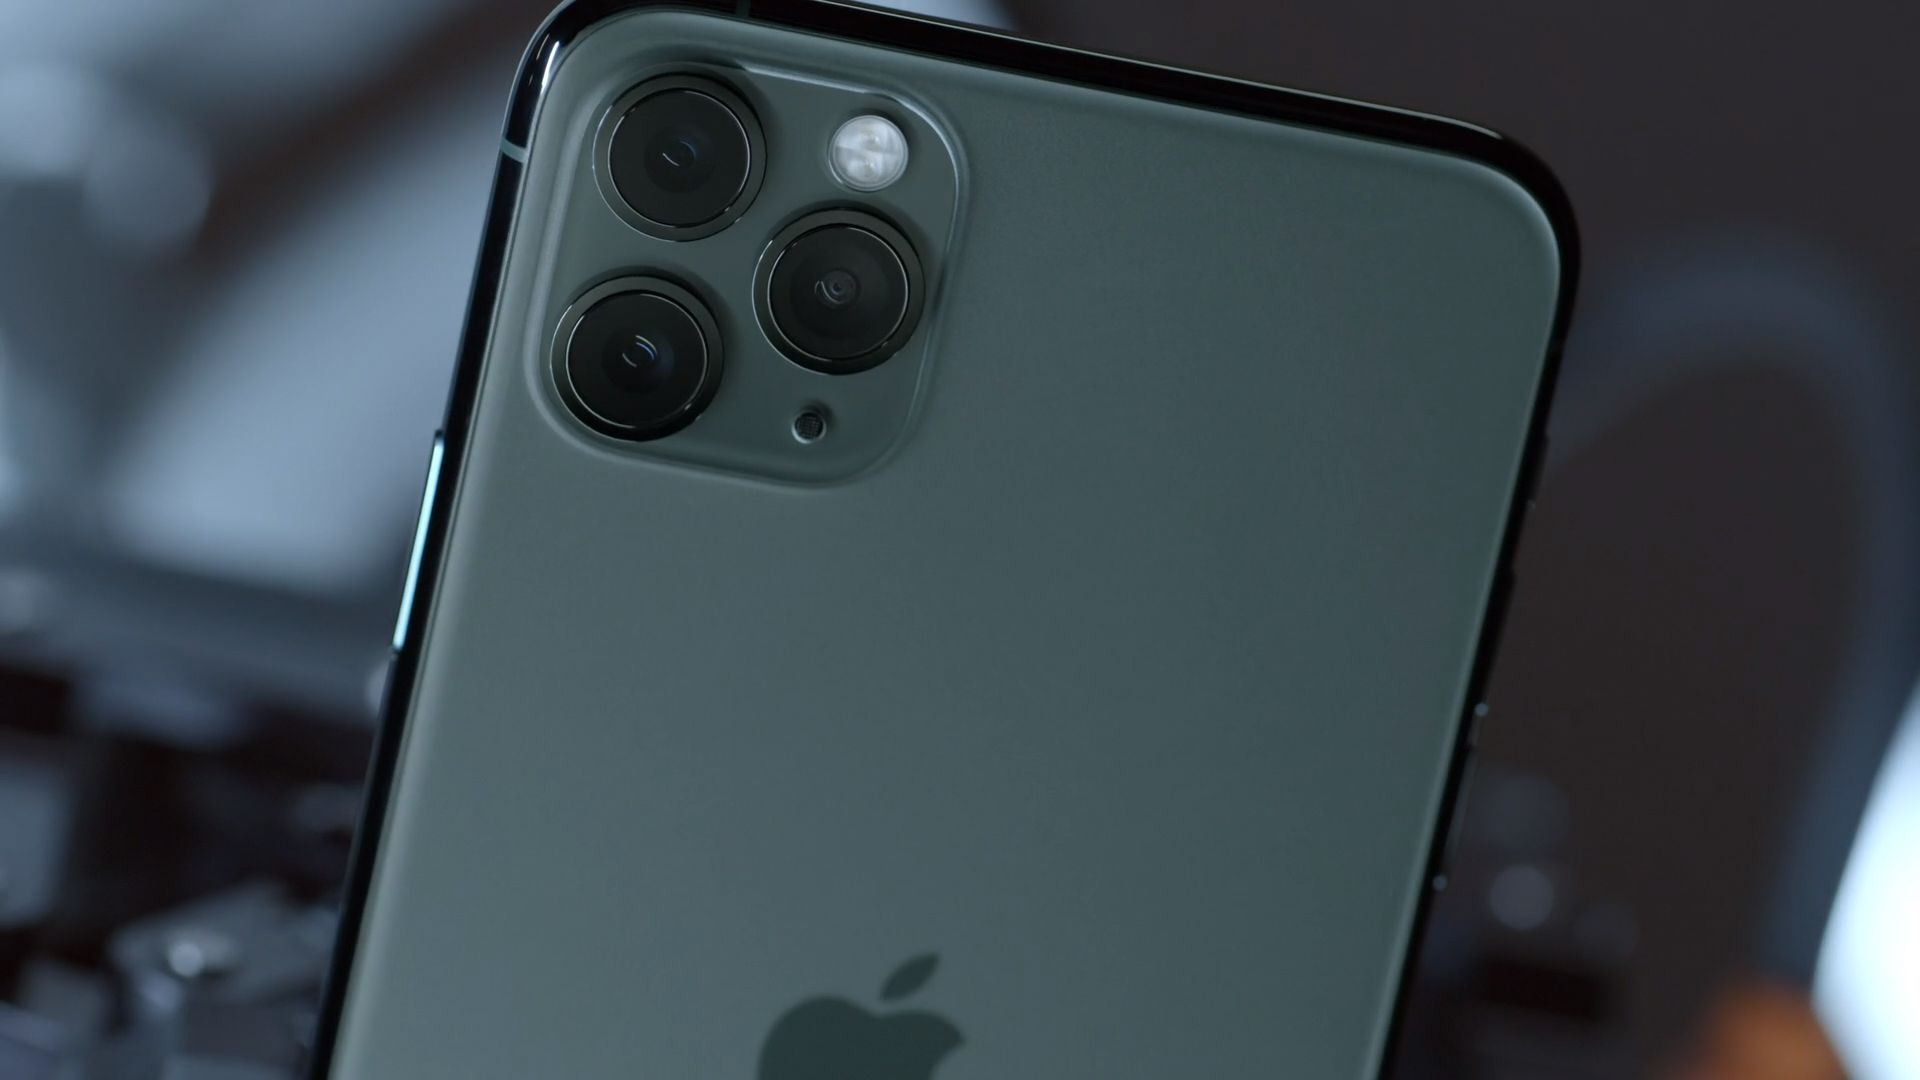 iPhone 11 Pro, Apple September 2019 Event, iPhone 11 (horizontal)